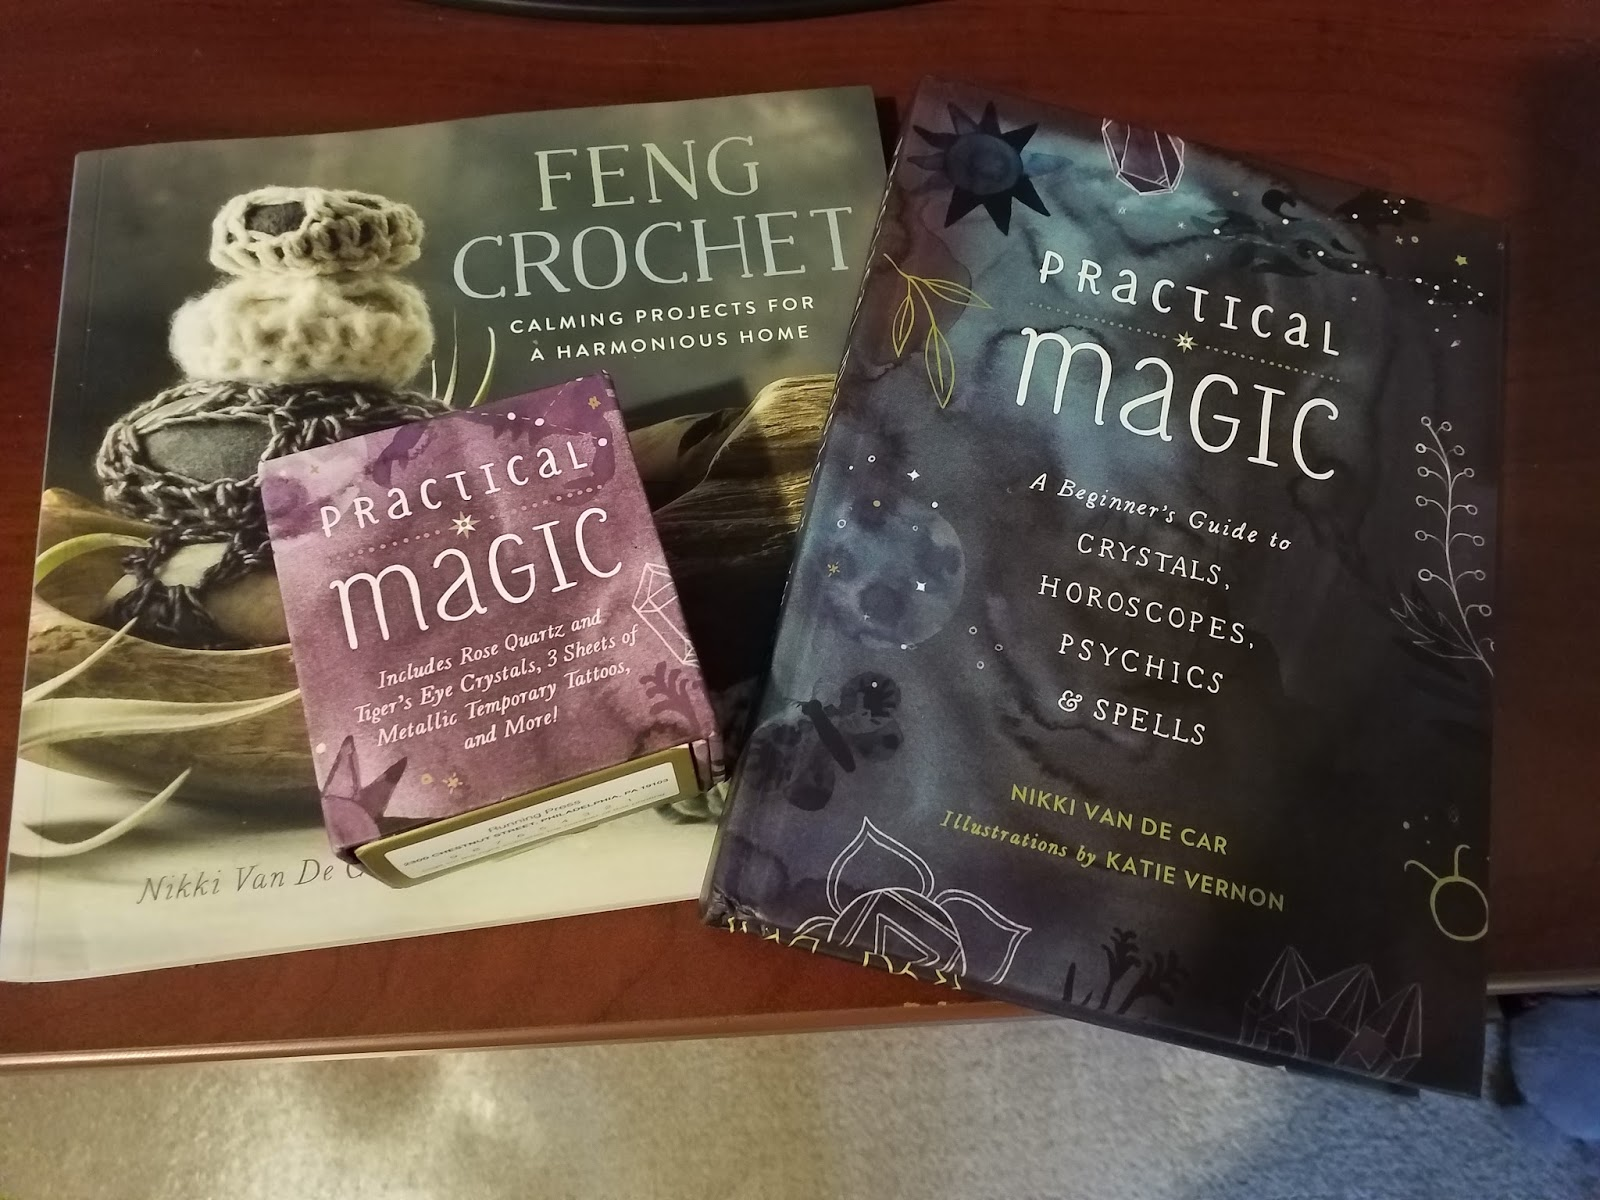 practical magic a beginners guide to crystals horoscopes psychics and spells english edition